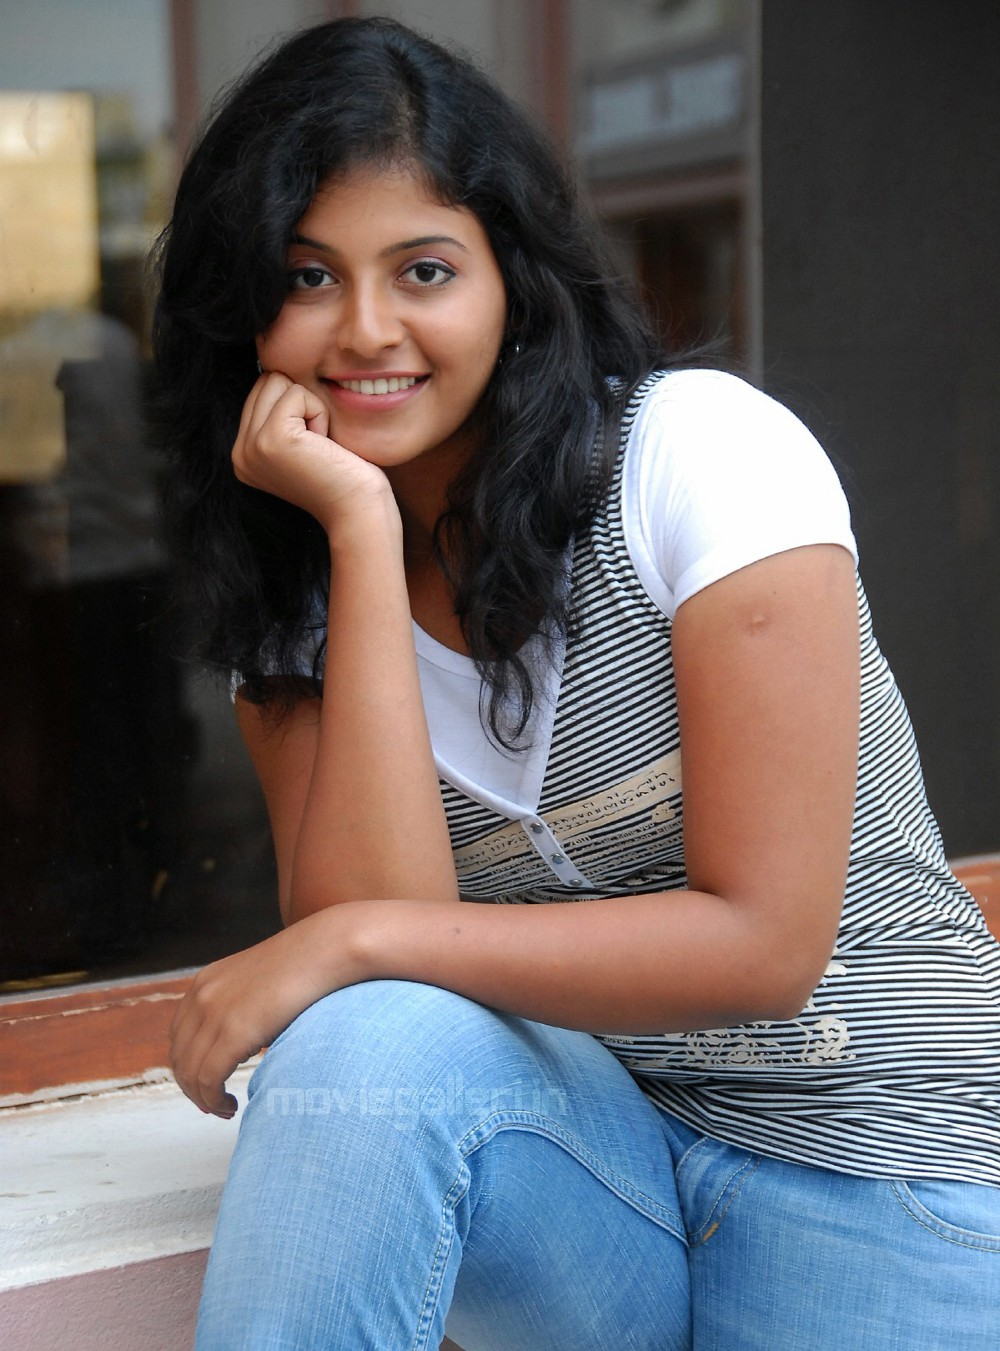 Tamil Actress Anjali Latest Hq Cute Stills In Jeans New Movie Posters